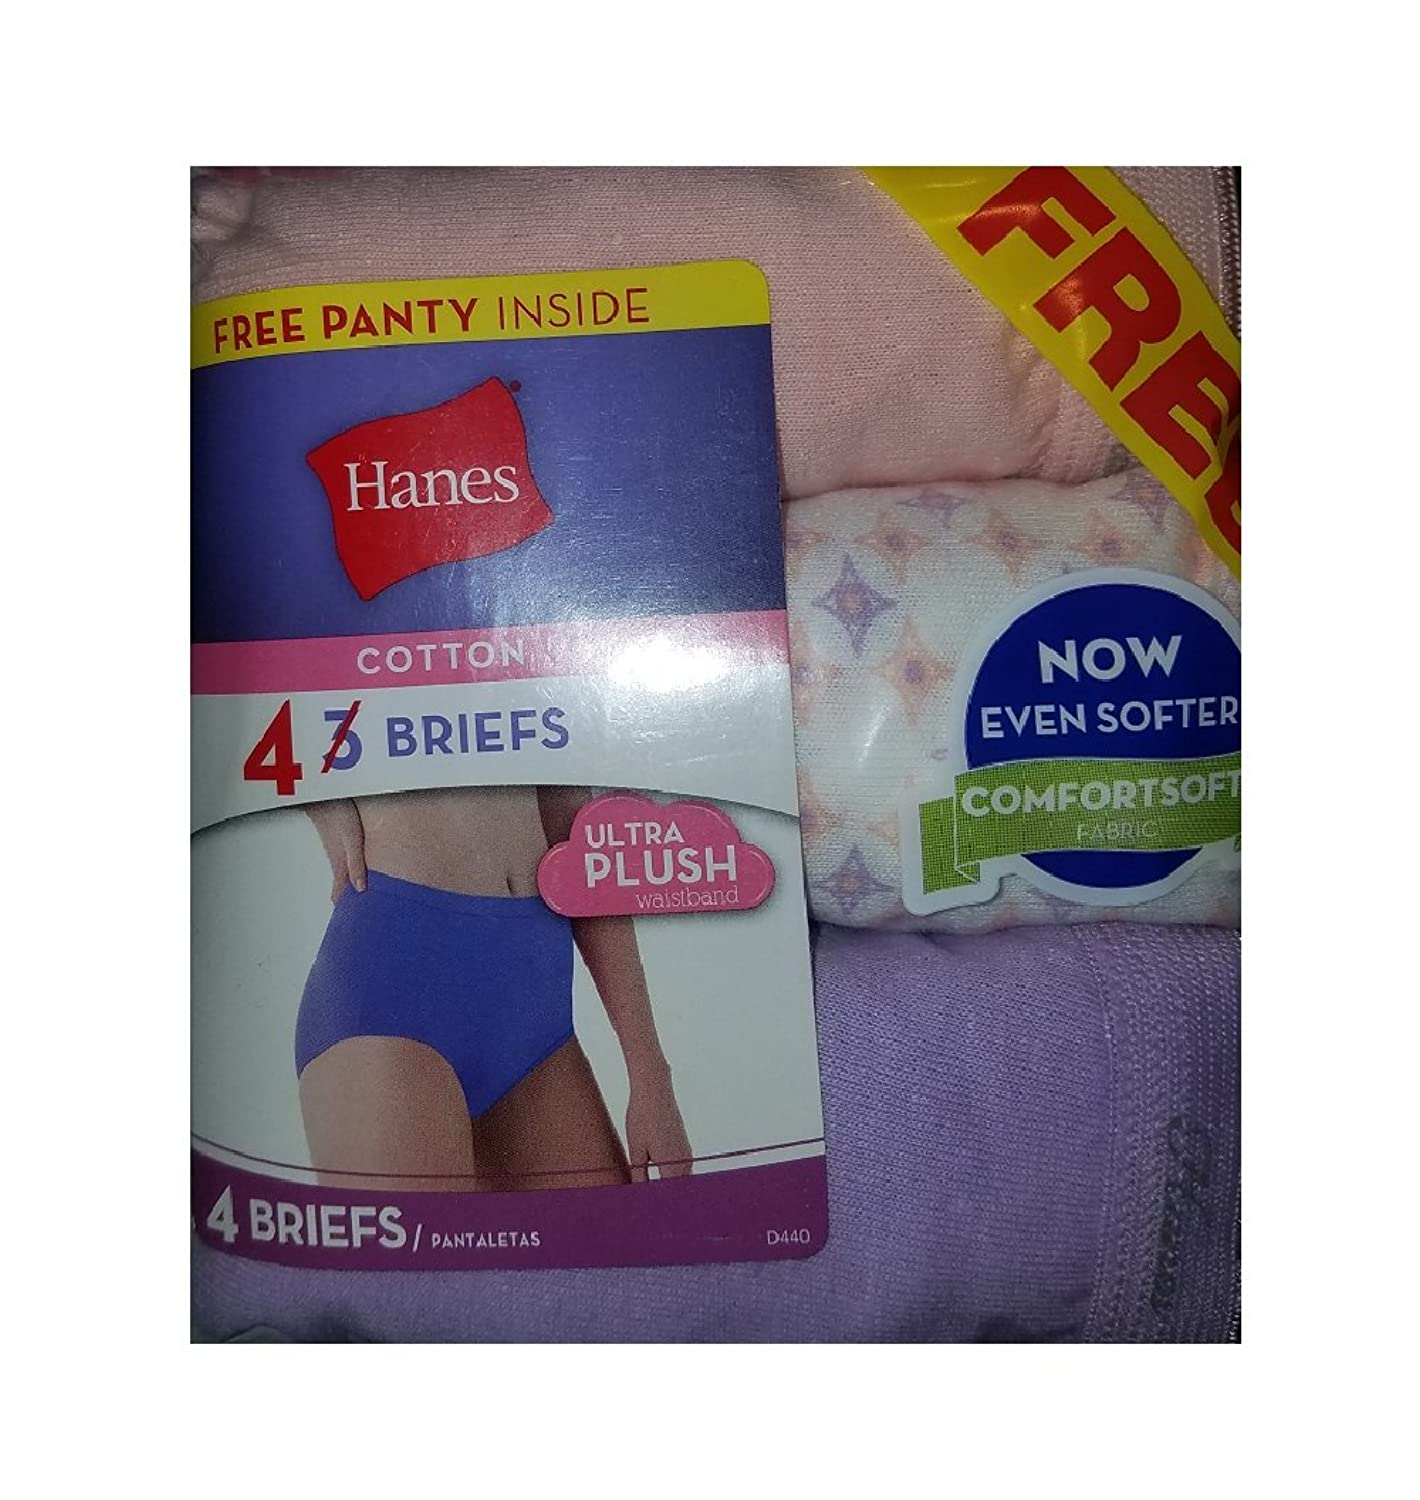 Hanes 100% Cotton Briefs 4 Pack (Size 6)